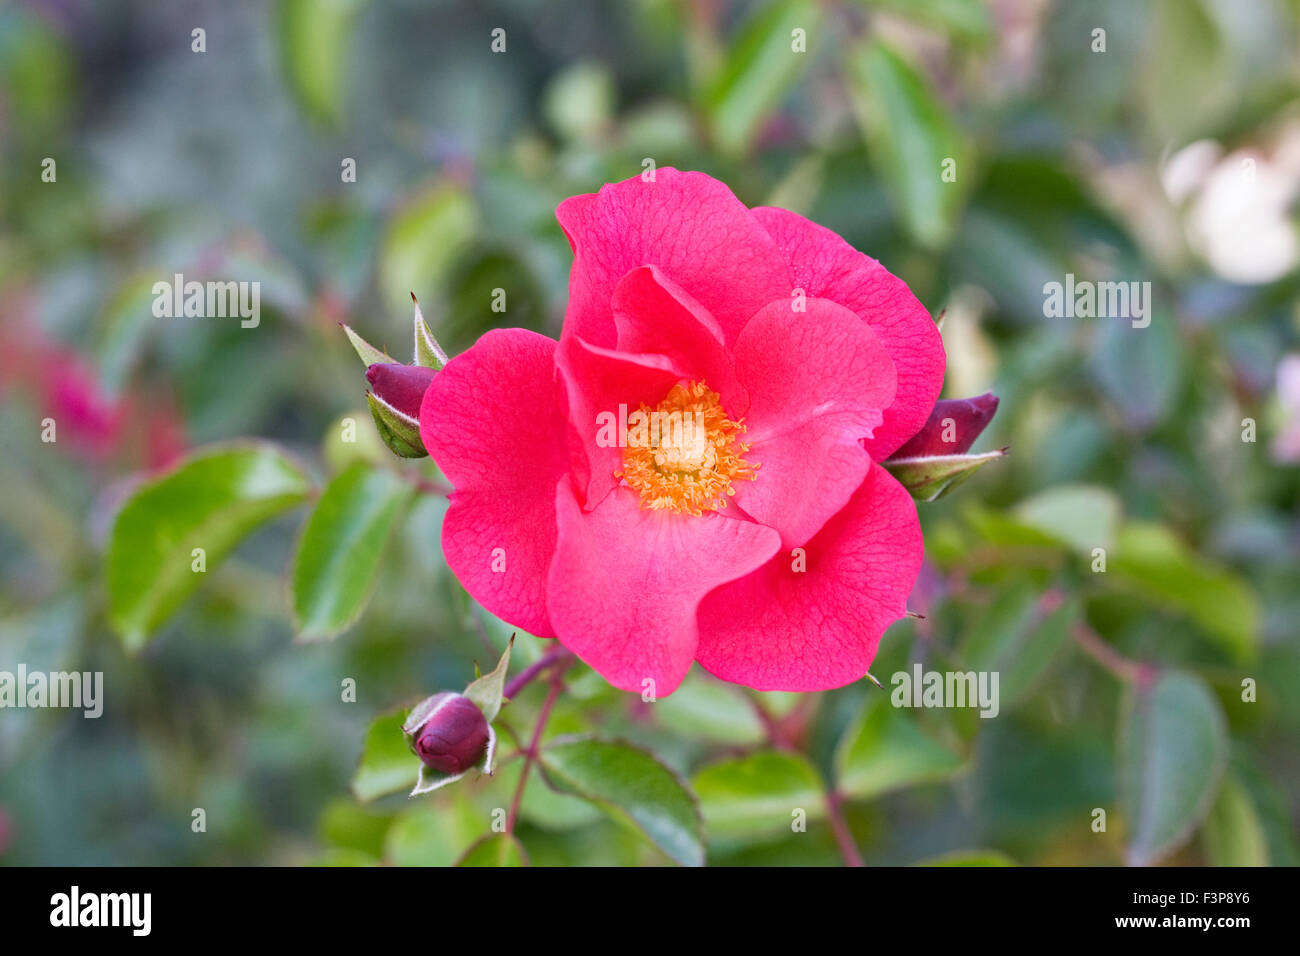 Rosa Wild Thing 'Jactoose' flower. - Stock Image